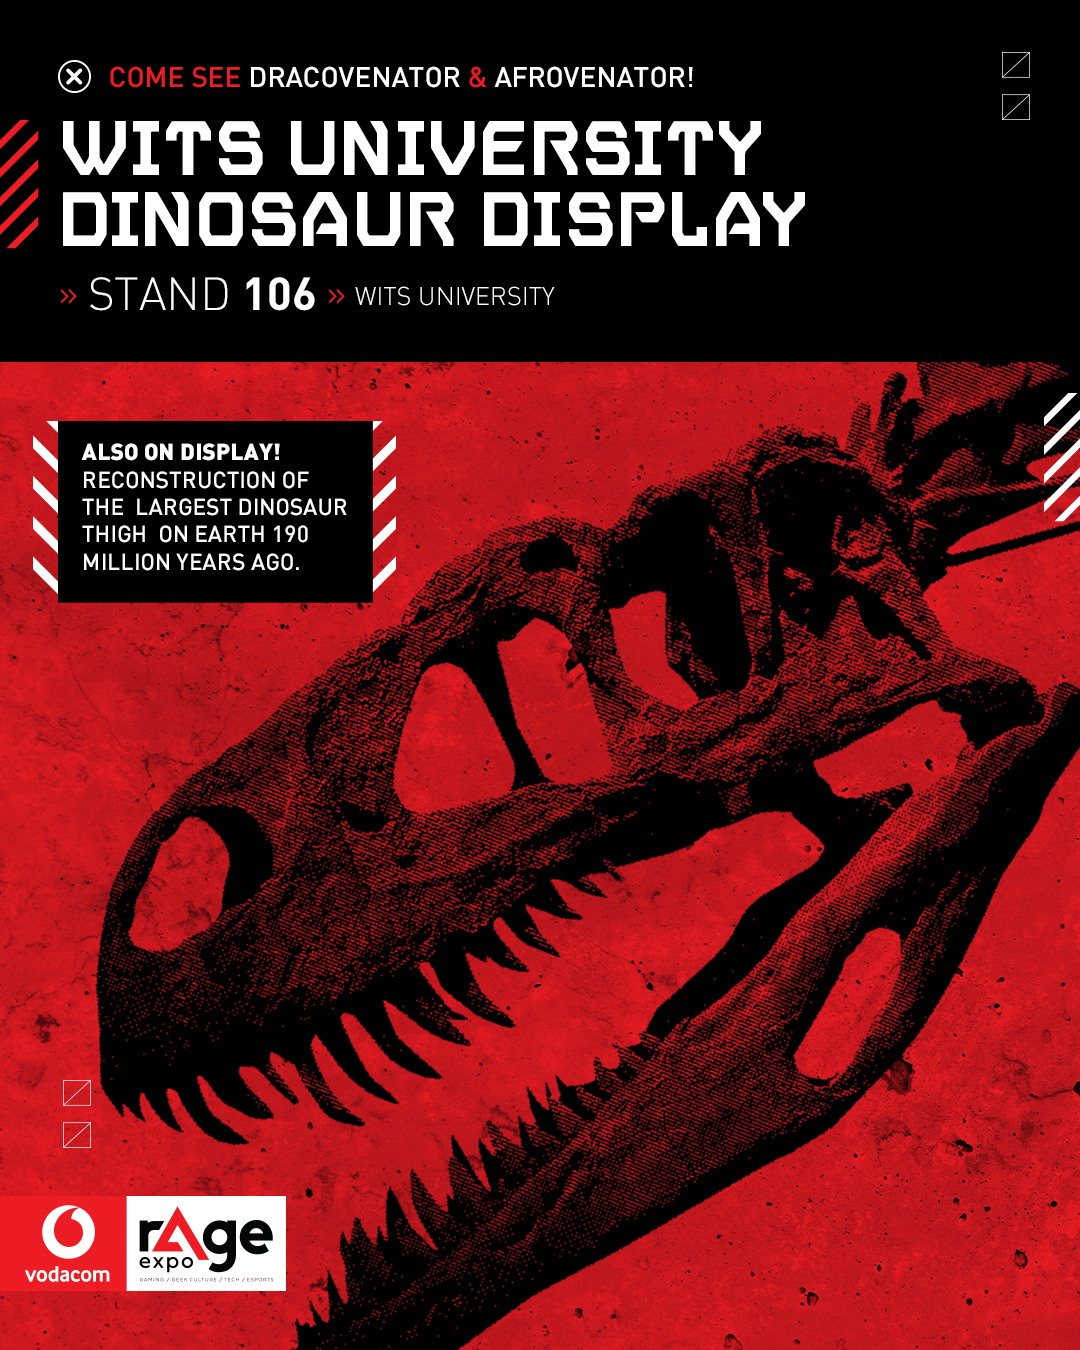 Vodacom rAge 2019 - Wits University Dinosaur Display